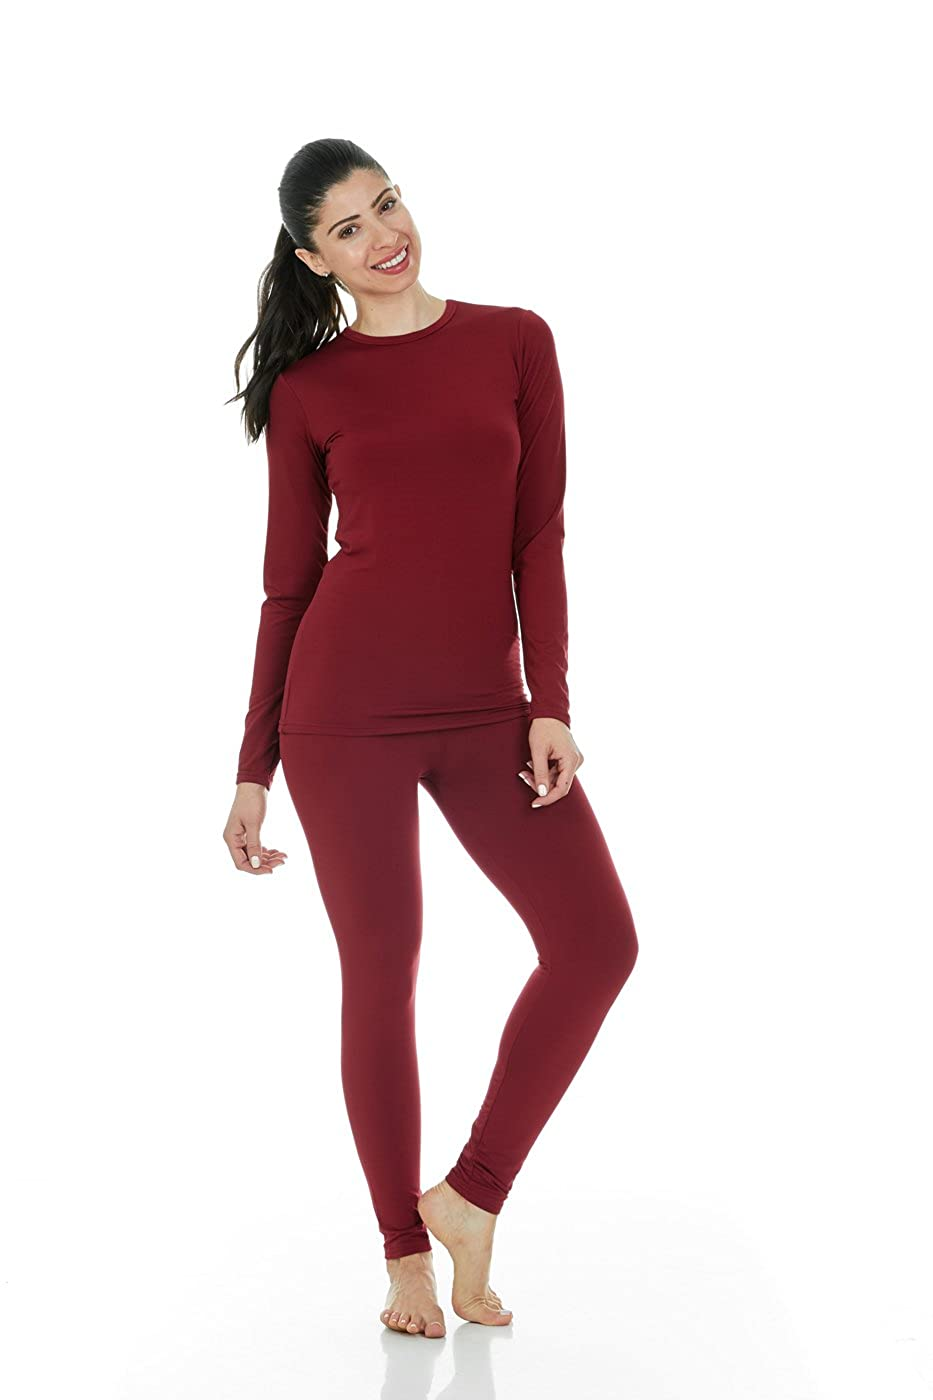 Women's Ultra Soft Thermal Underwear Long Johns Set with Fleece Lined T-W-M-2175